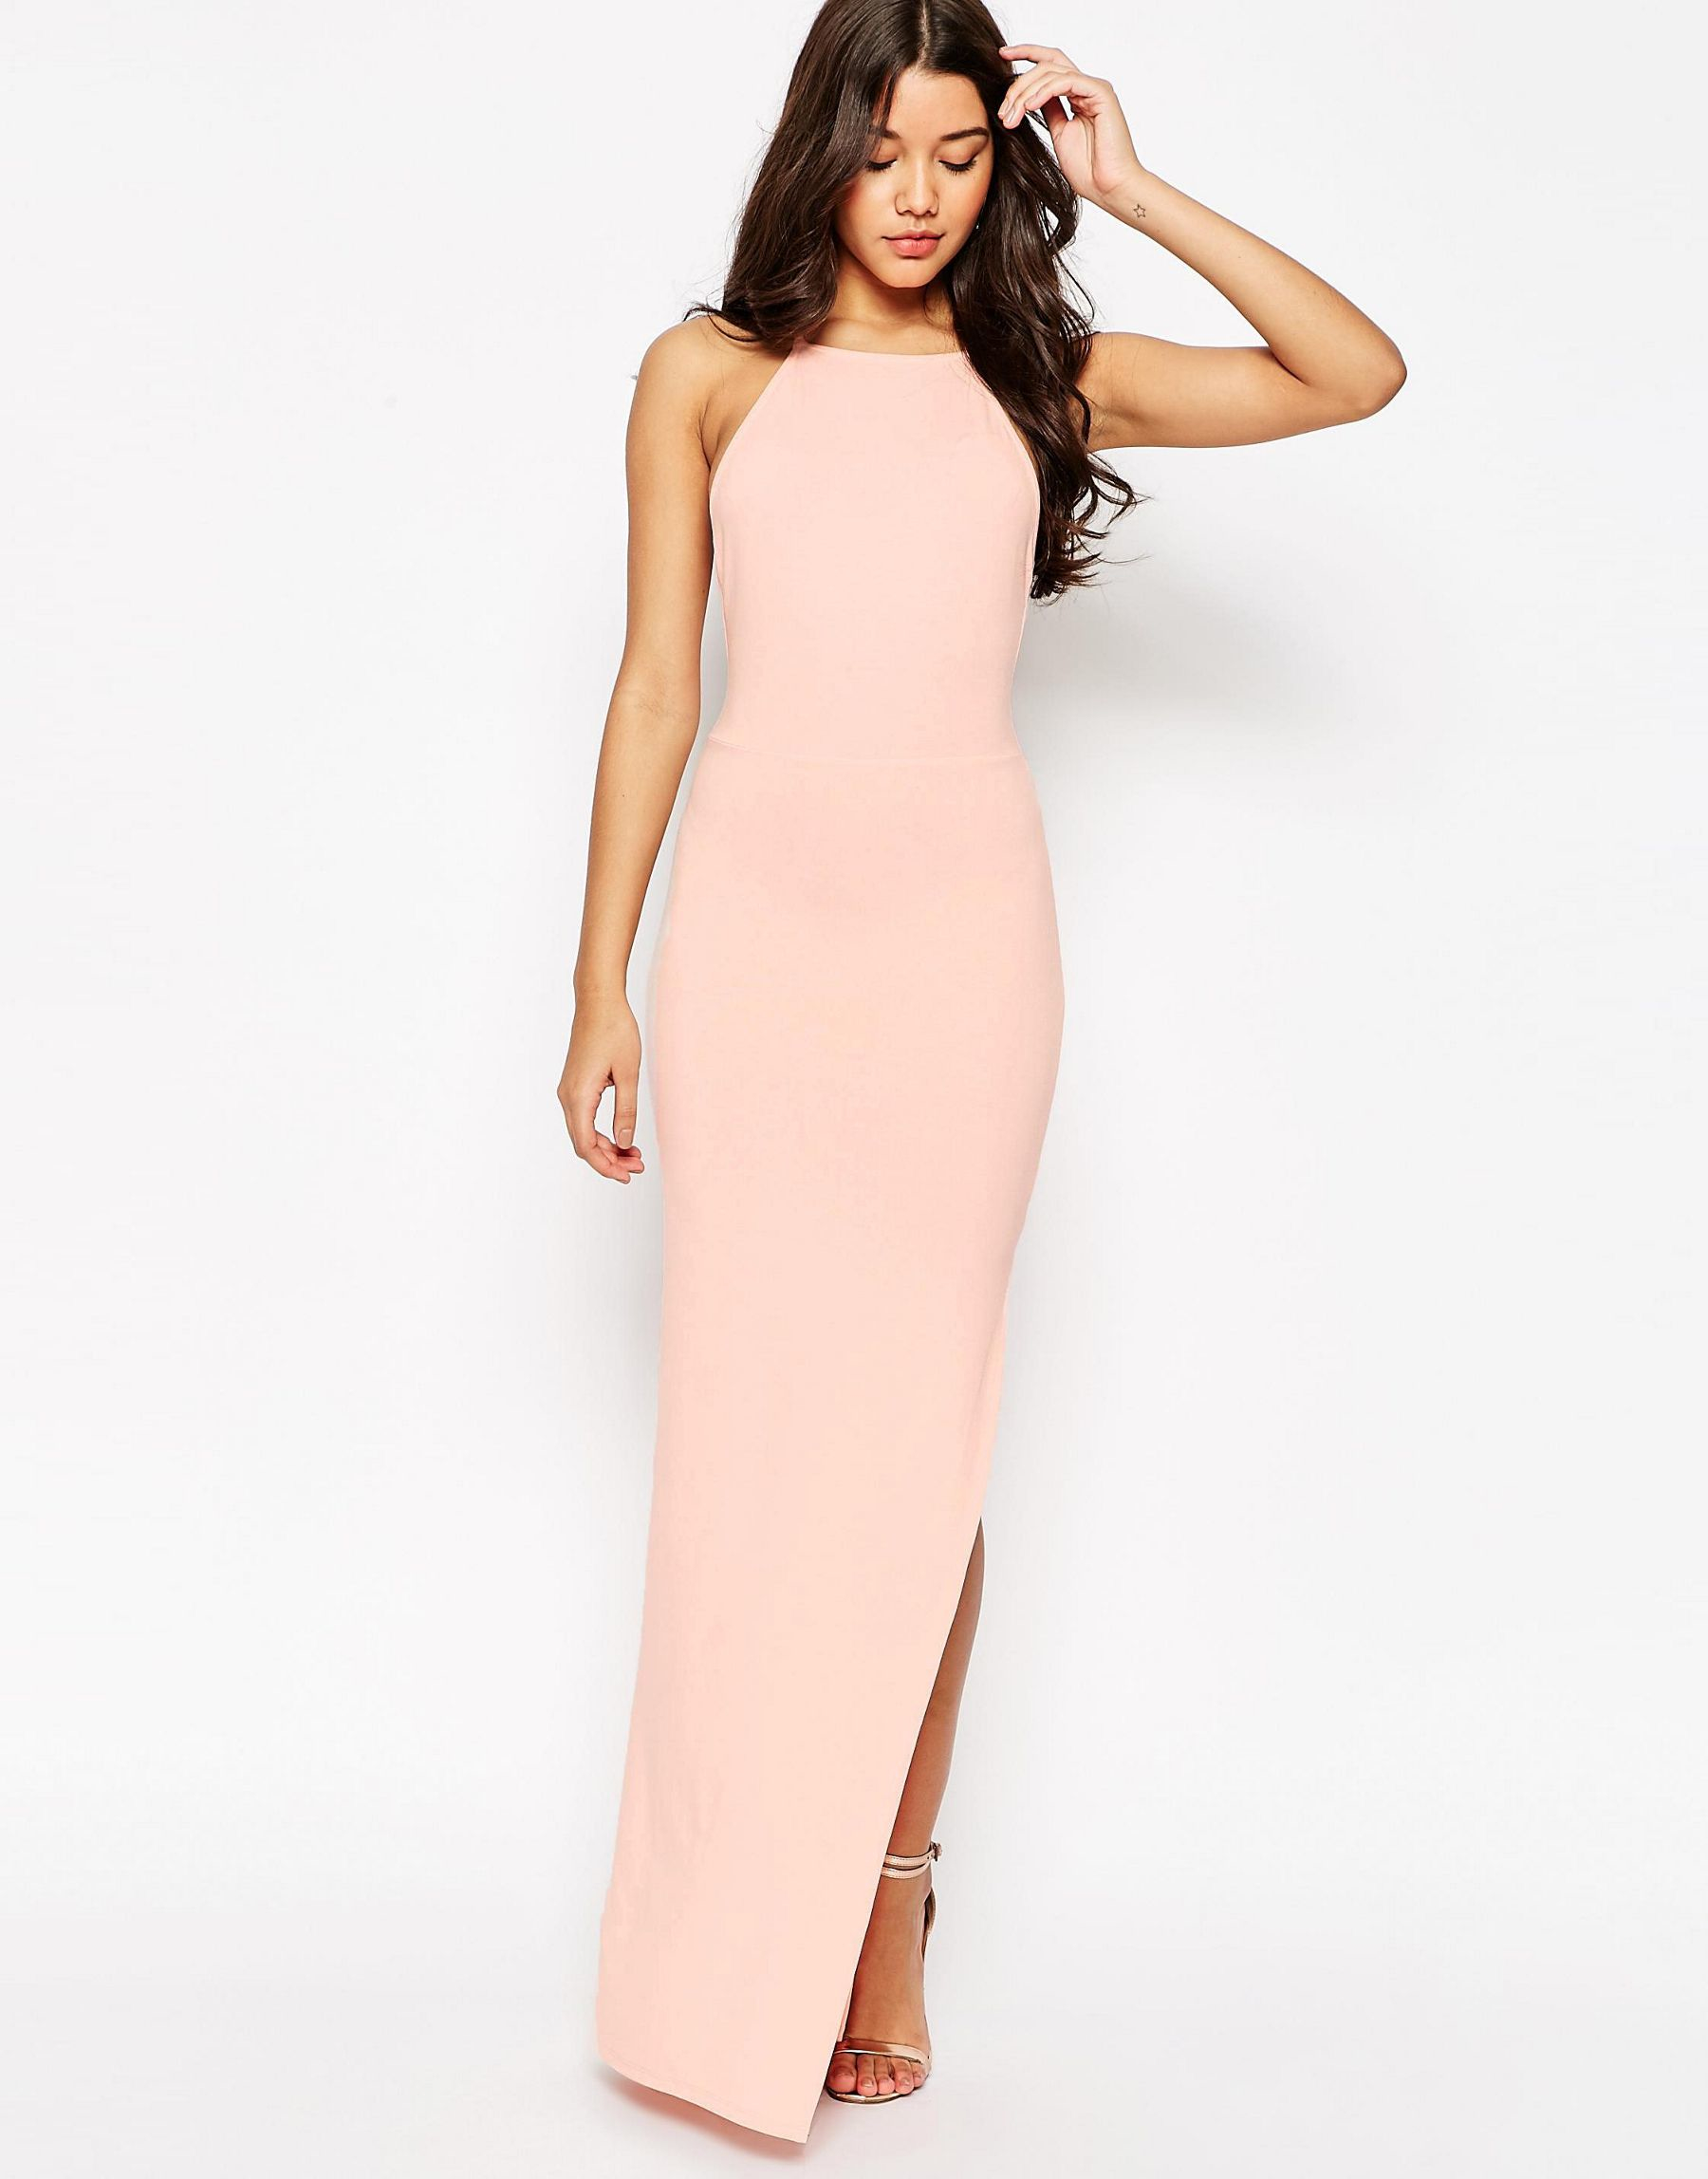 844c80bd211 Lyst - ASOS Halter Strappy Back Maxi Dress in Pink